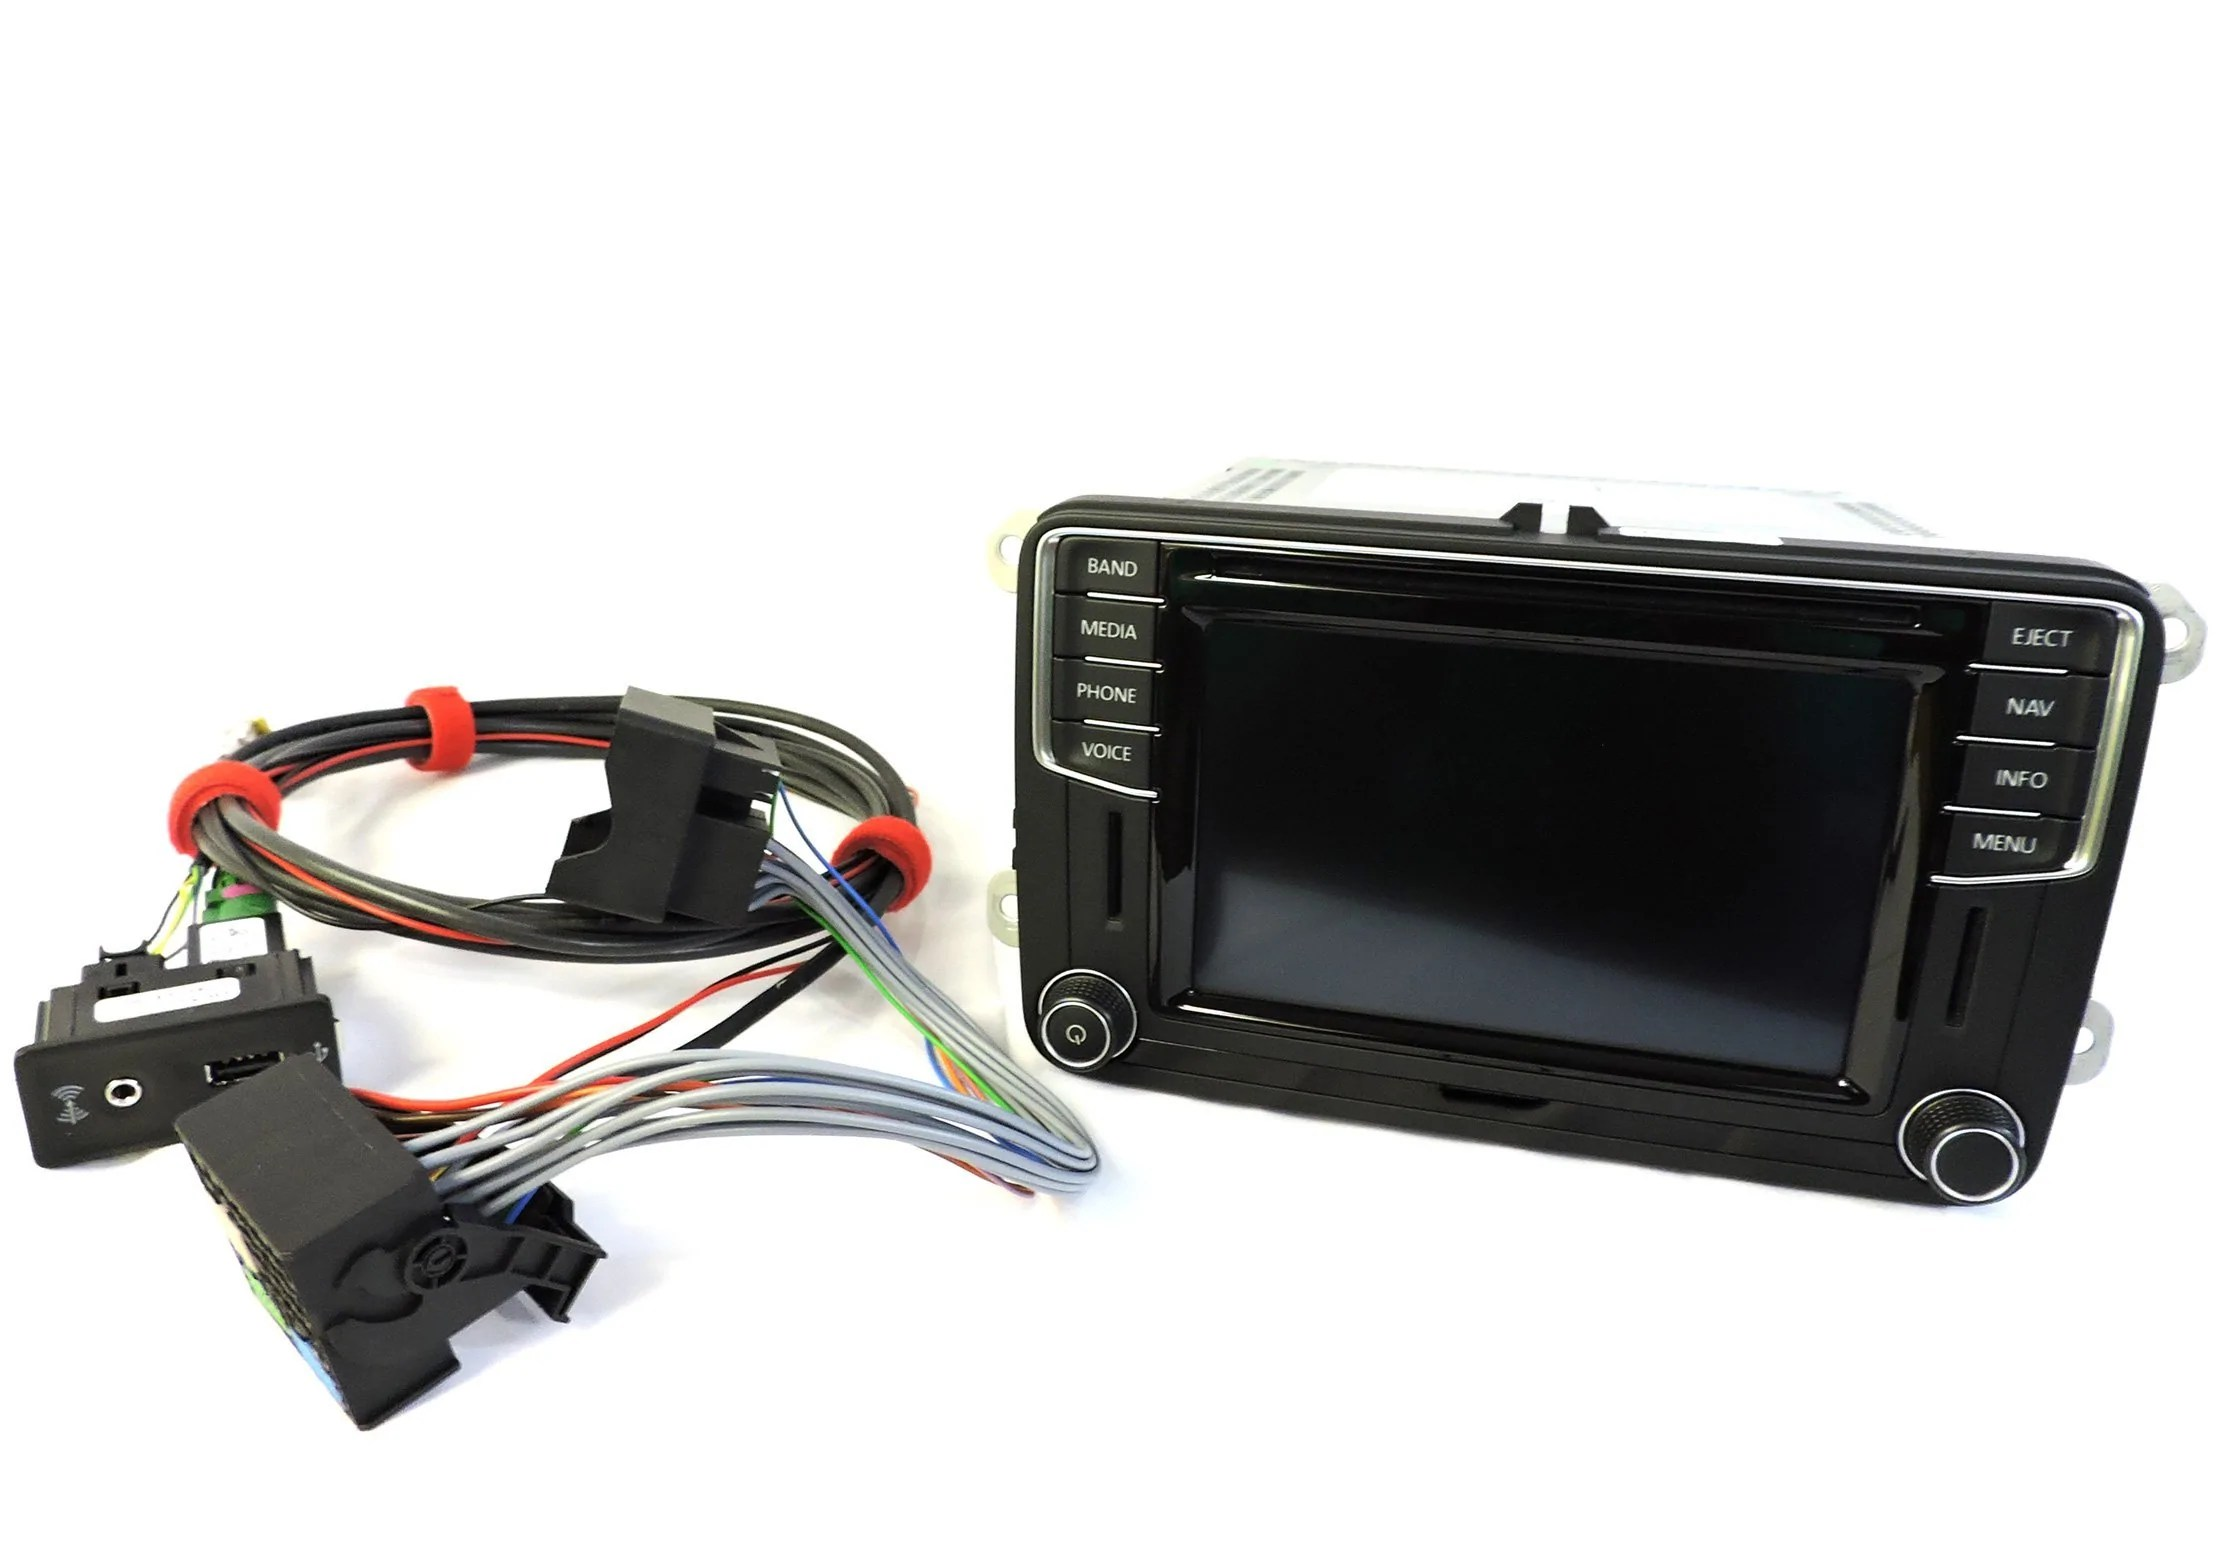 small resolution of vw discover media plus mib2 pq retrofit kit w app connect eurozone tuning